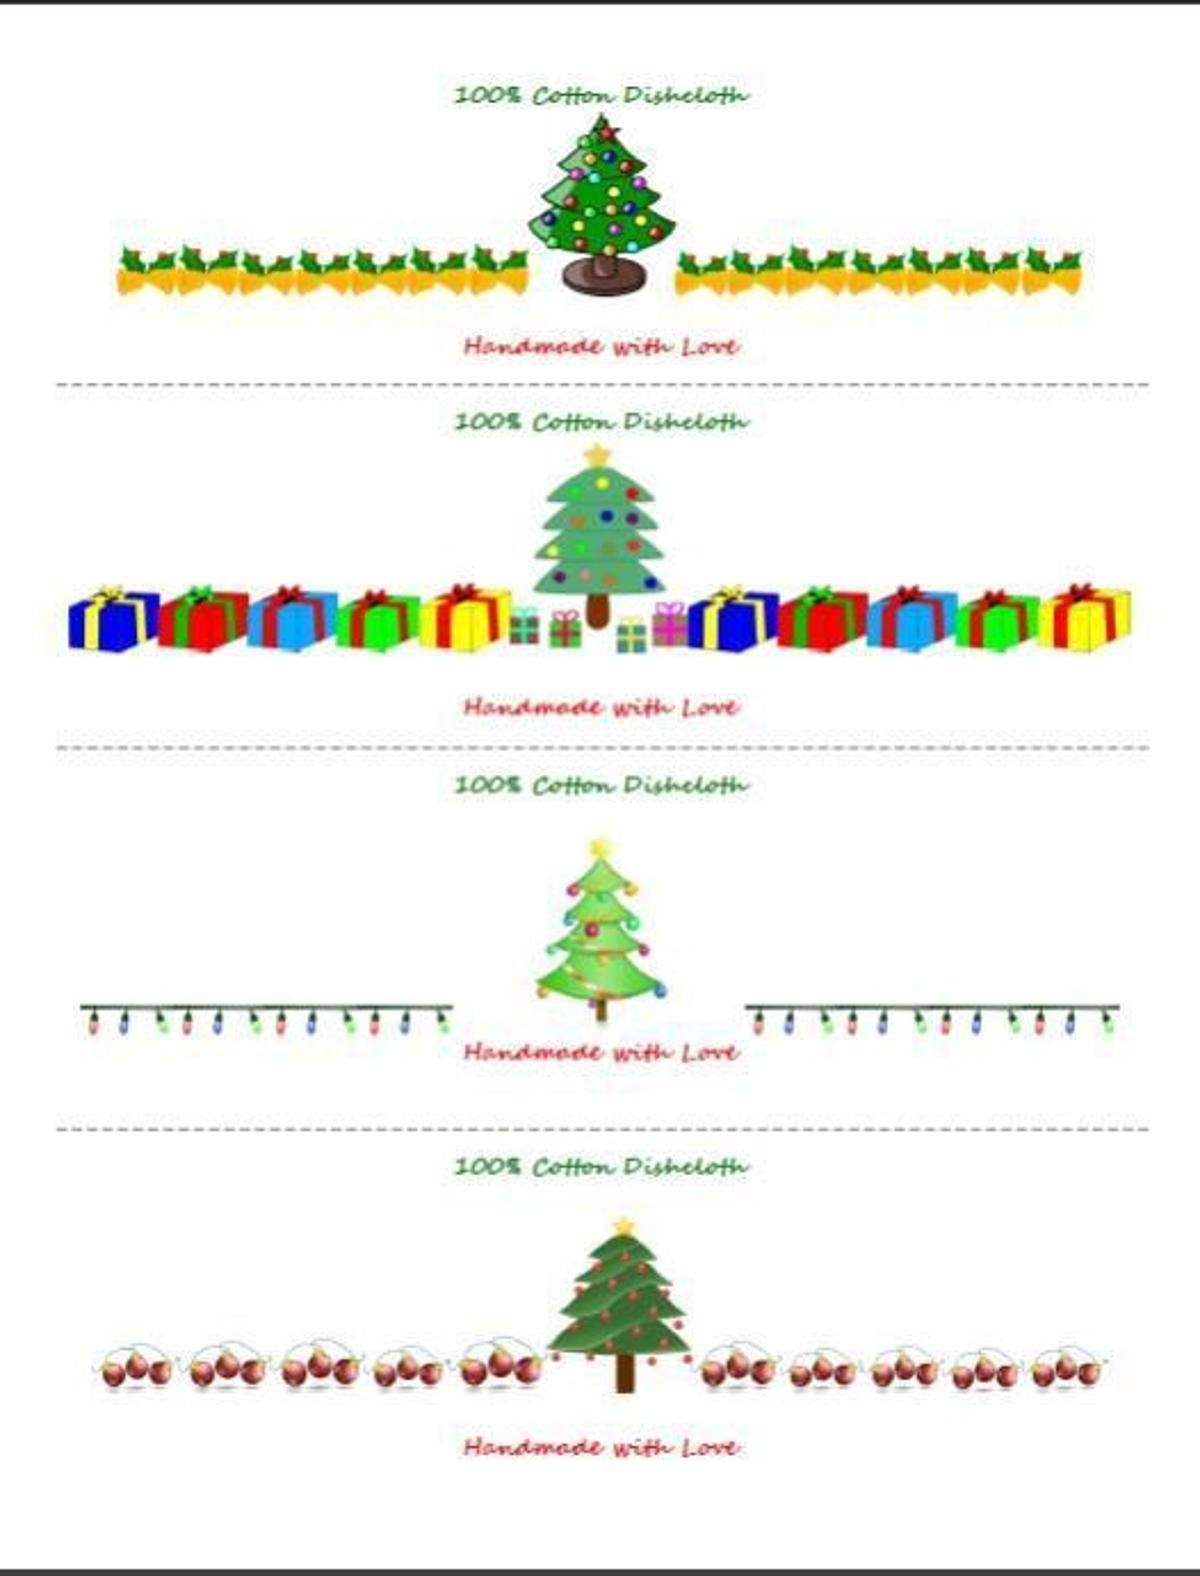 Christmas Tree Dishcloth Labels Wrappers | Crochet and knitting ...